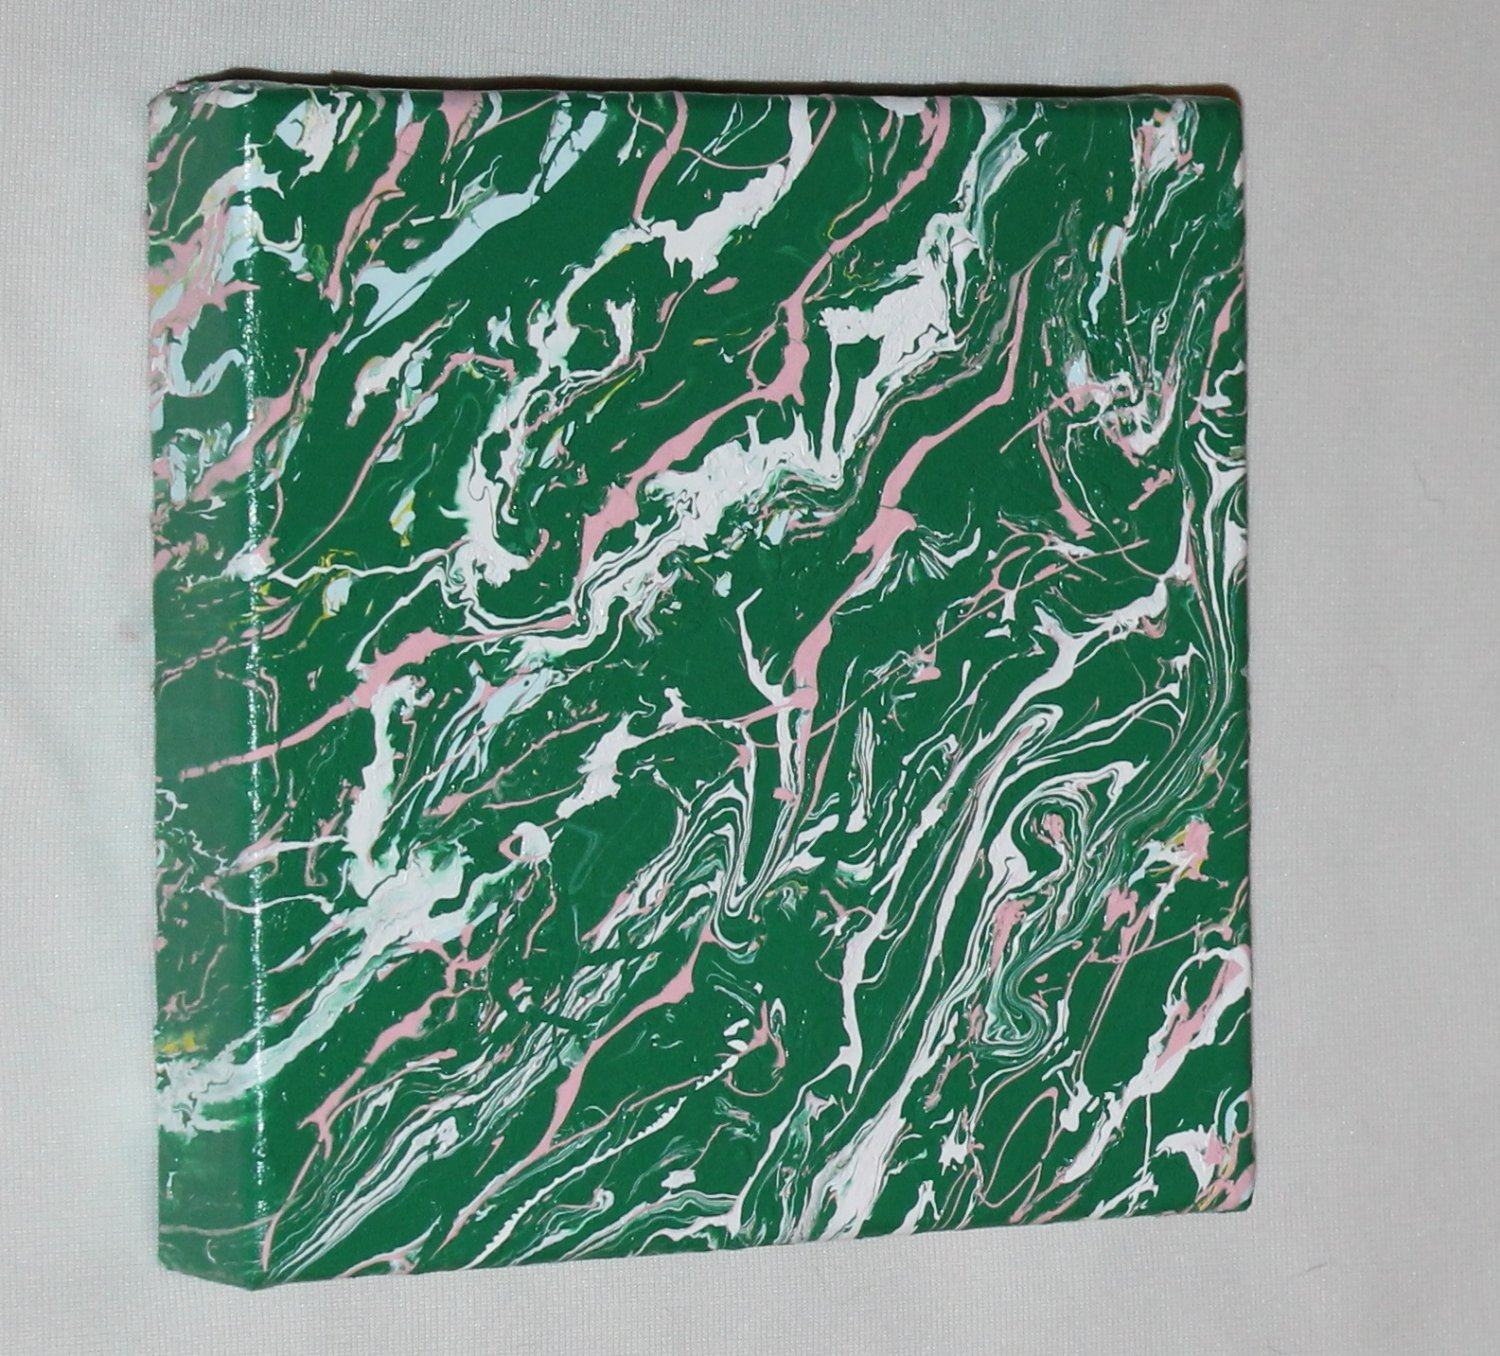 Home or Business Decor Art -  abstract painting - green pink white - marbled design